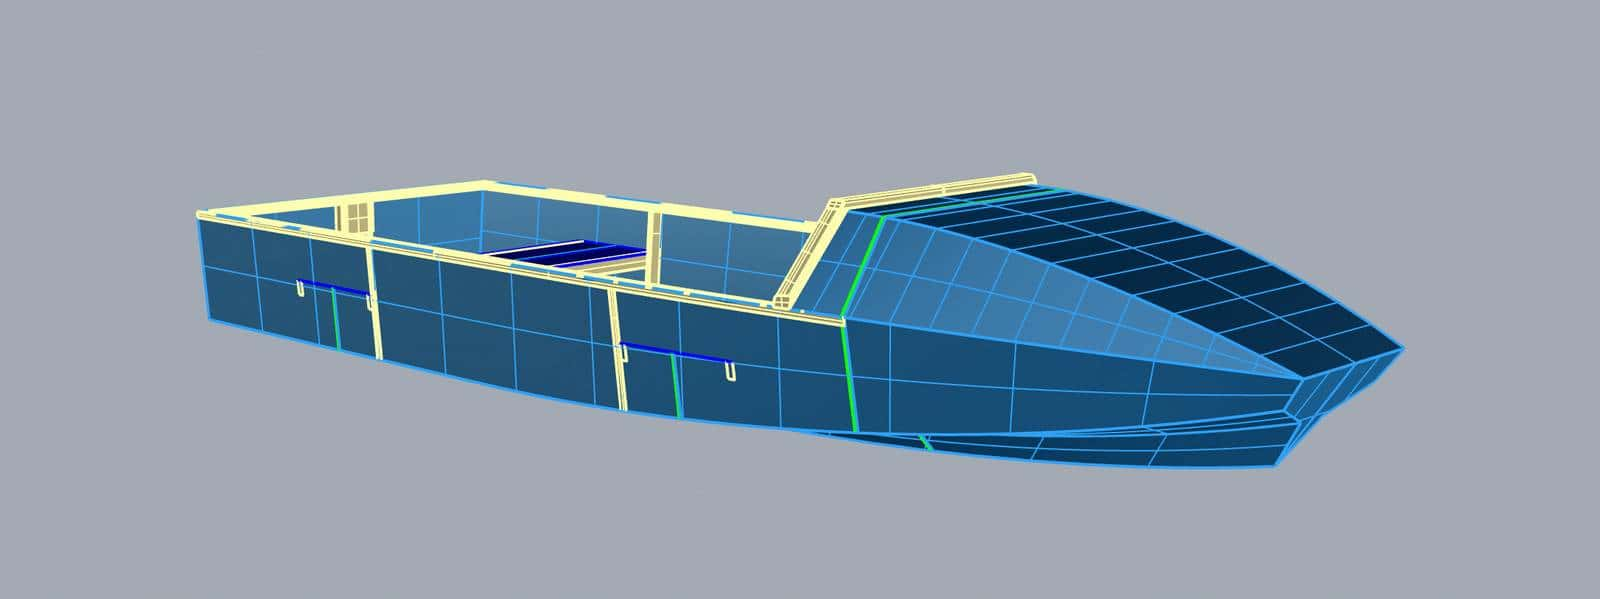 Small boat plans available now! - Tim Weston Boats